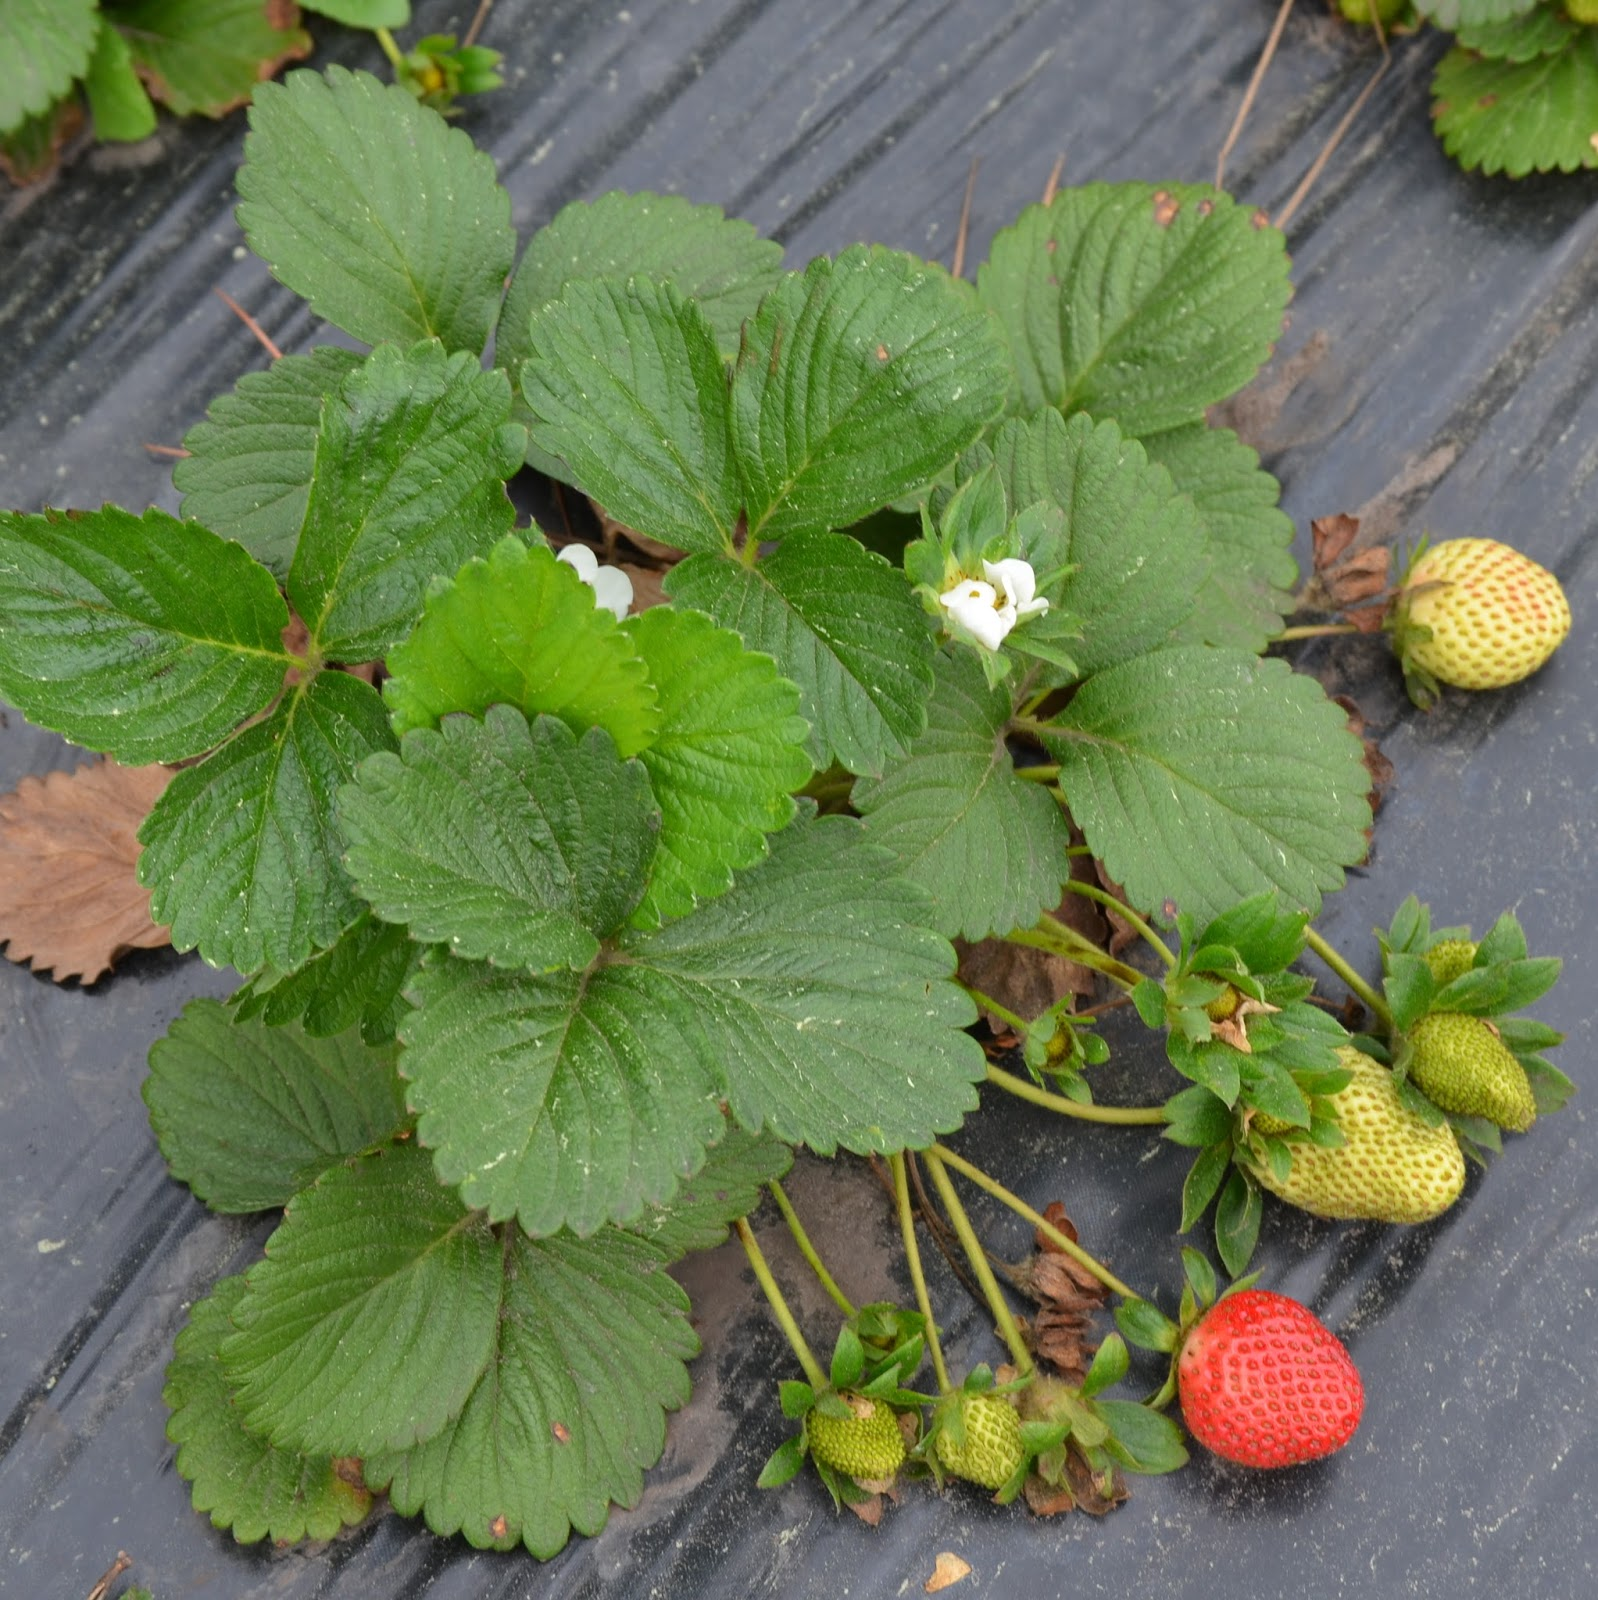 Farmers seed supply co inc strawberries the edible groundcover - Plant strawberries spring ...